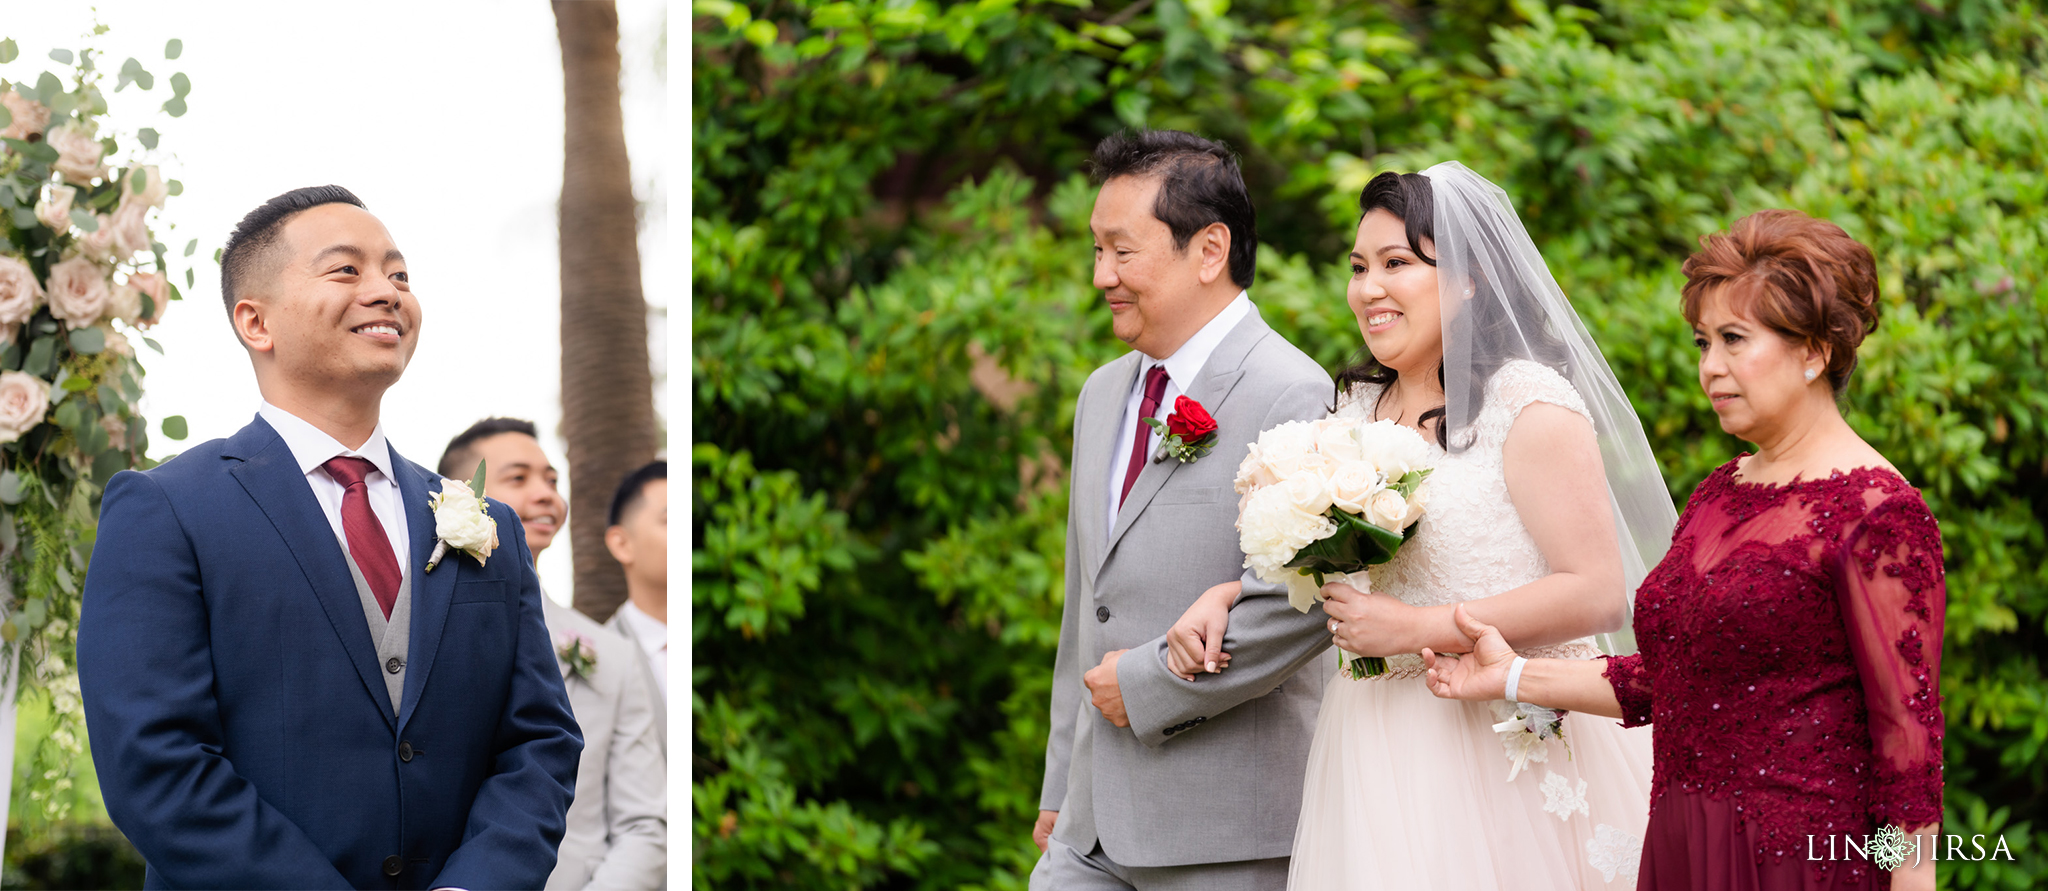 09 Castle Green Pasadena Los Angeles Wedding Photographer